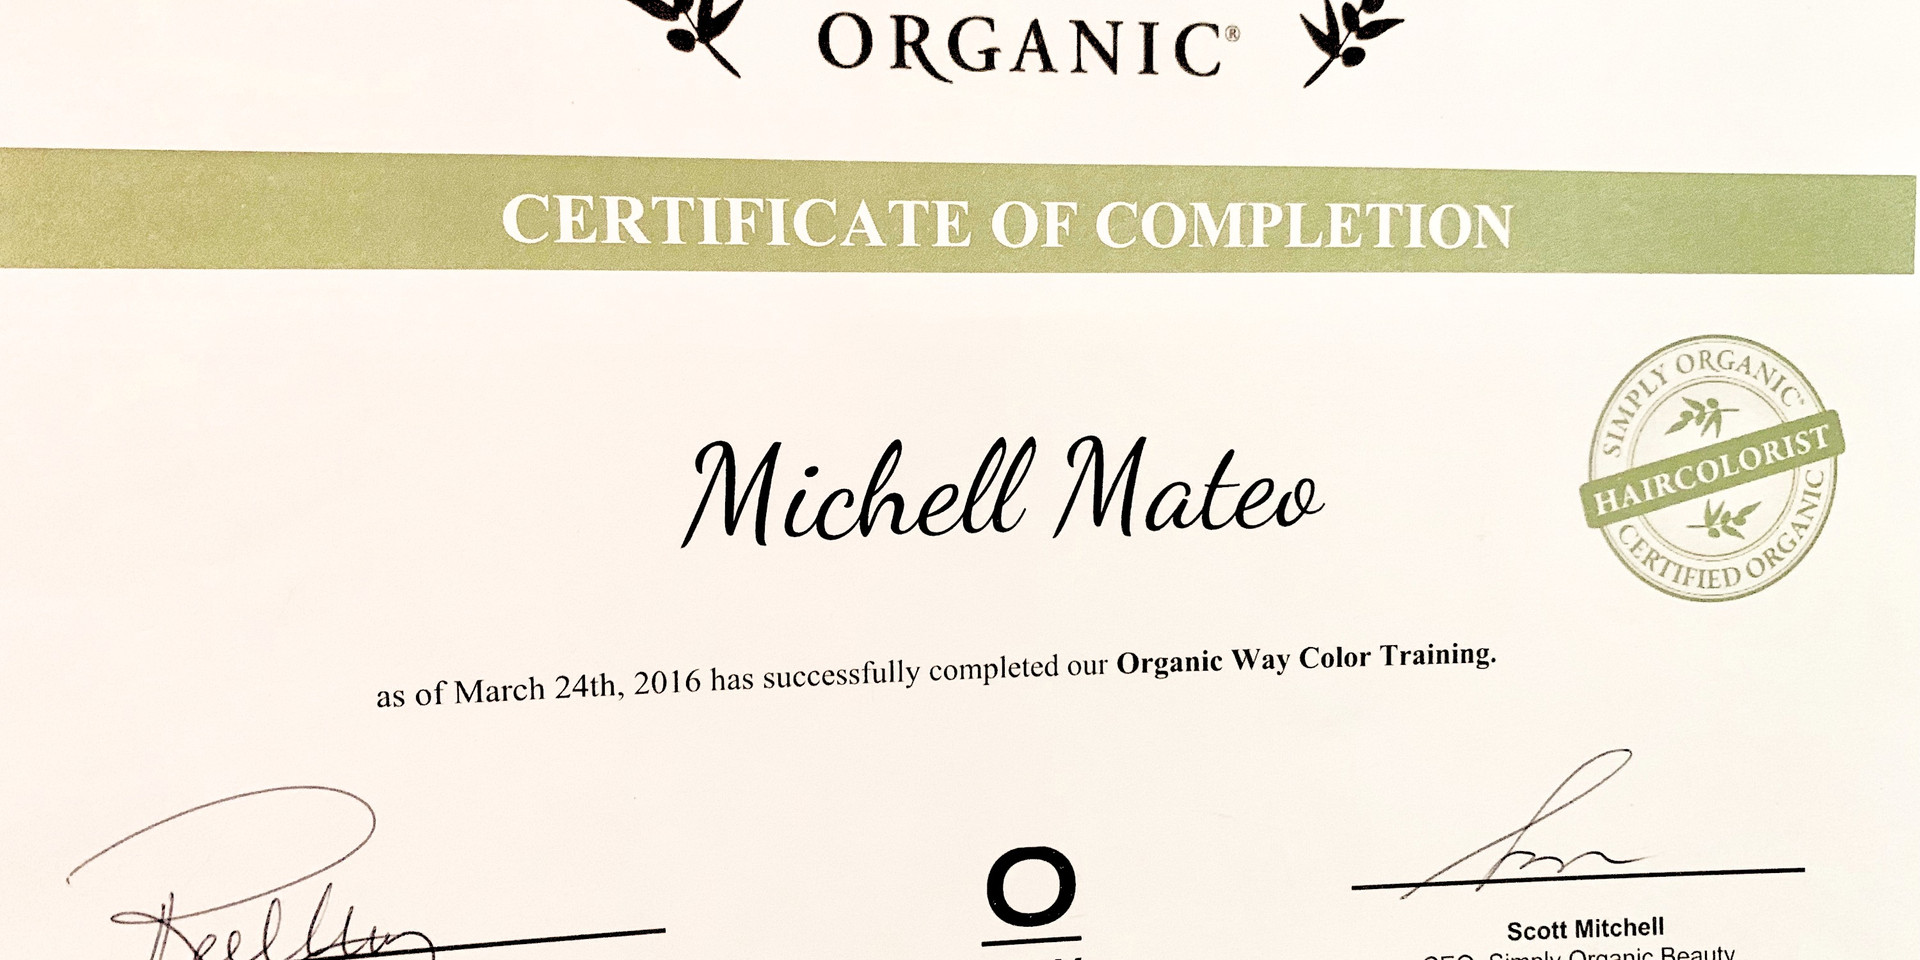 Certified Organic Hair colorist